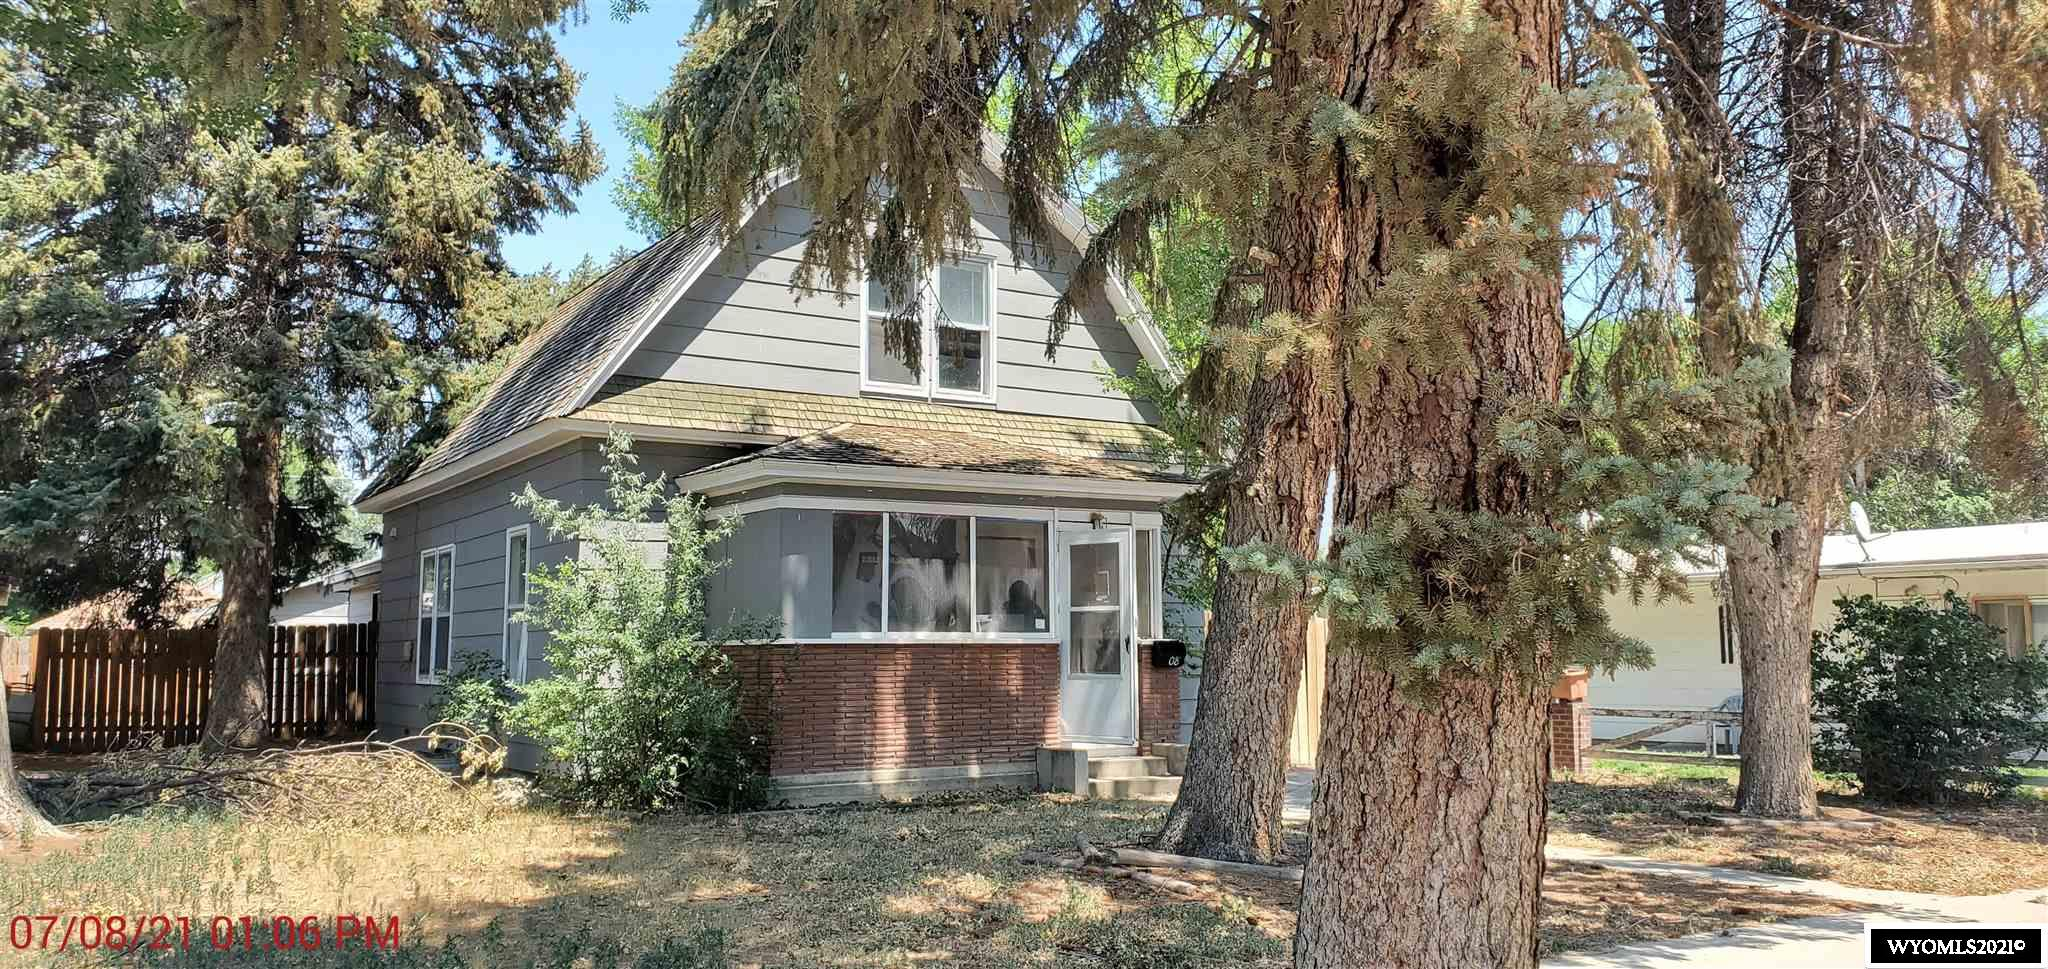 Looking for a fixer upper or a house to flip, look no further.  1 1/2 story house with 2-car detached garage. Lots of potential! All offers must be submitted by the Buyer's agent via RES.NET Agent Portal.  If your offer is accepted, you agree to be responsible for an offer submission technology fee of $150.  The fee will be included on the closing disclosure and paid at the closing of the transaction.  To submit your buyer's offer, simply click the link below.  If you already have a RES.NET Agent account, you will be prompted to log in.  If not, you will be prompted to create an account.  To begin, click or paste this link into your web browser: https://agent.res.net/Offers.aspx?-1721851